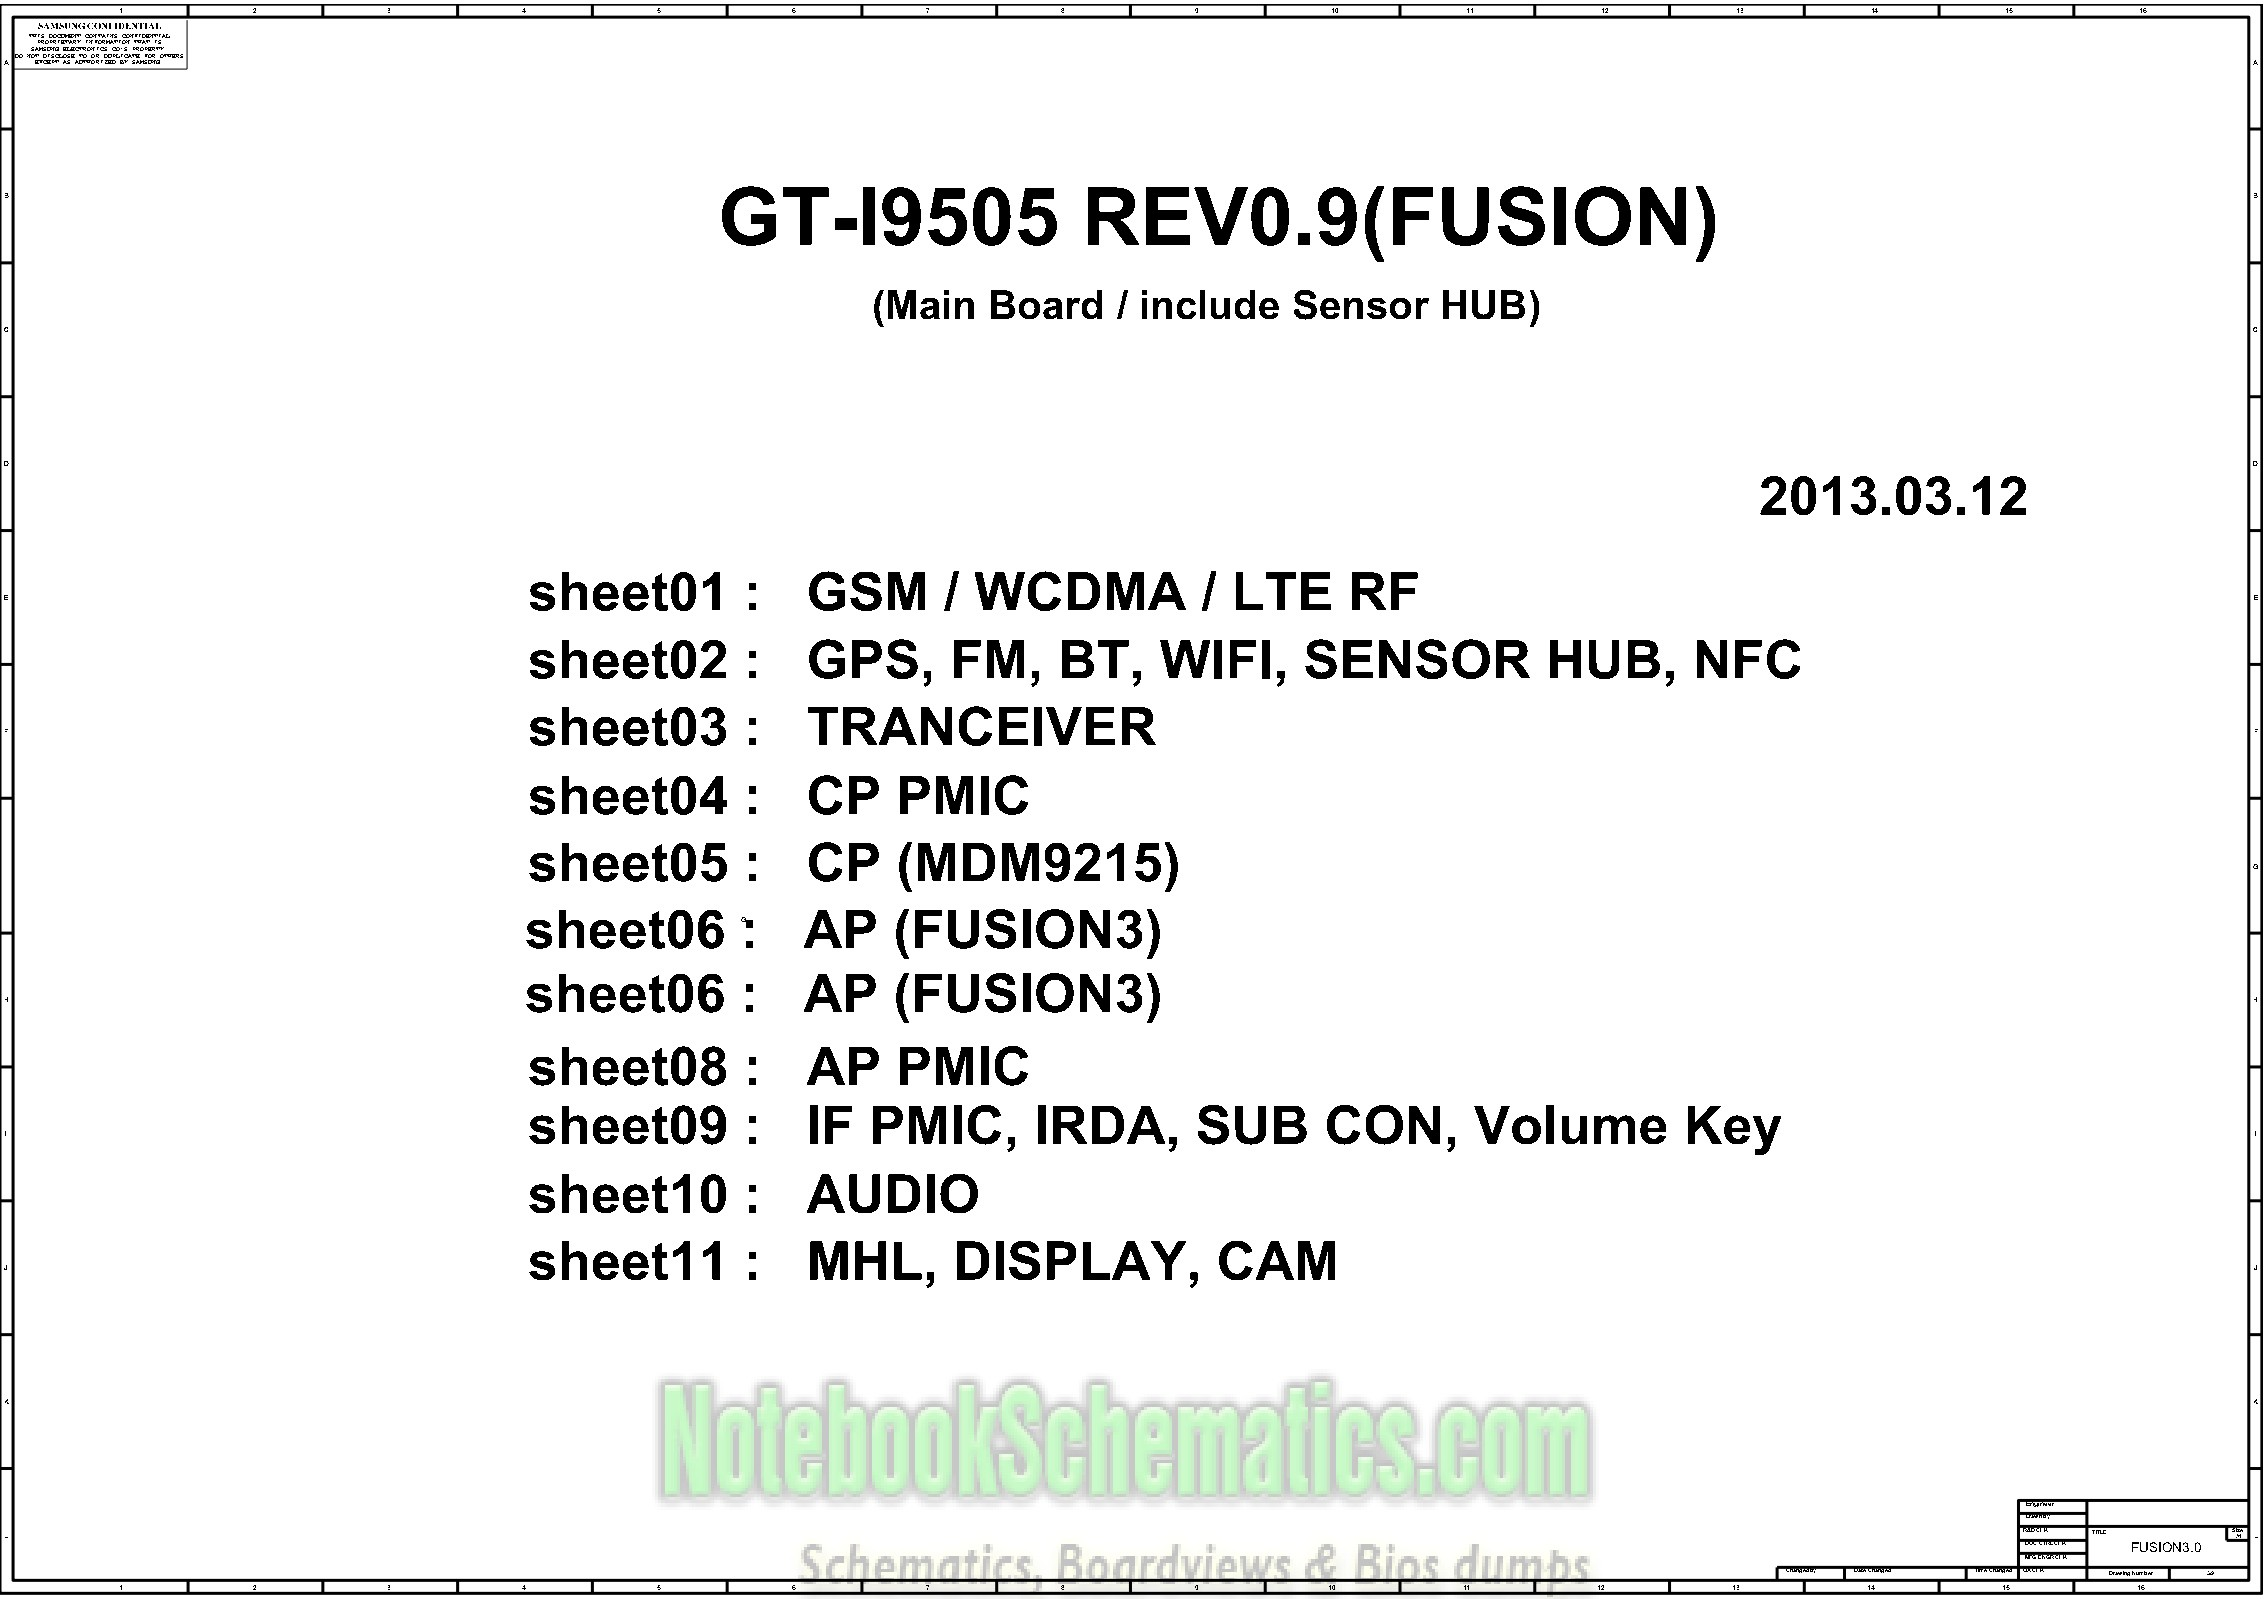 Samsung gt-i9505 sch service manual download, schematics, eeprom.